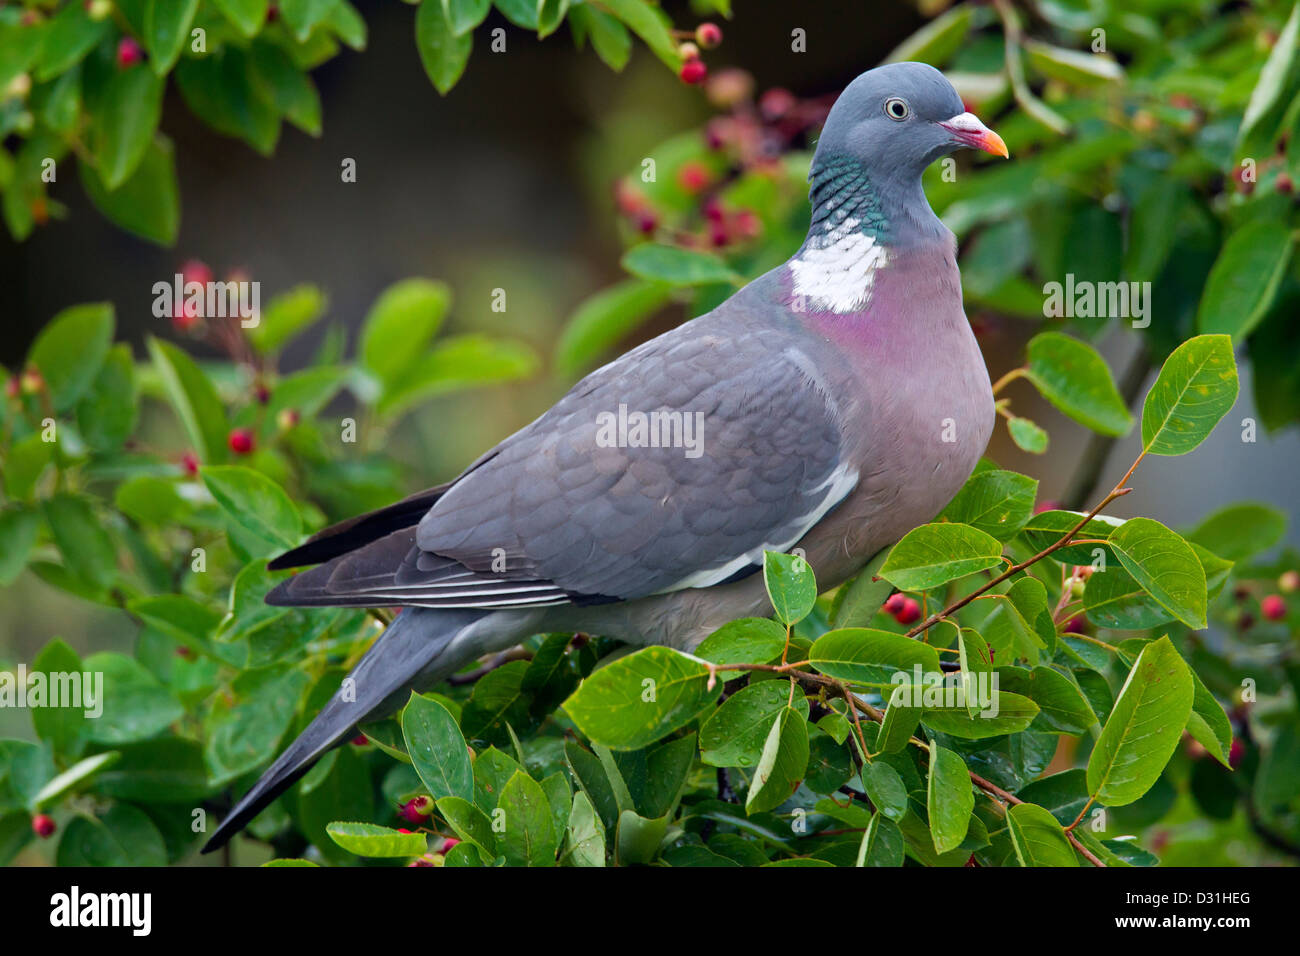 Common Wood Pigeon (Columba palumbus) perched on branch amongst leaves in tree - Stock Image